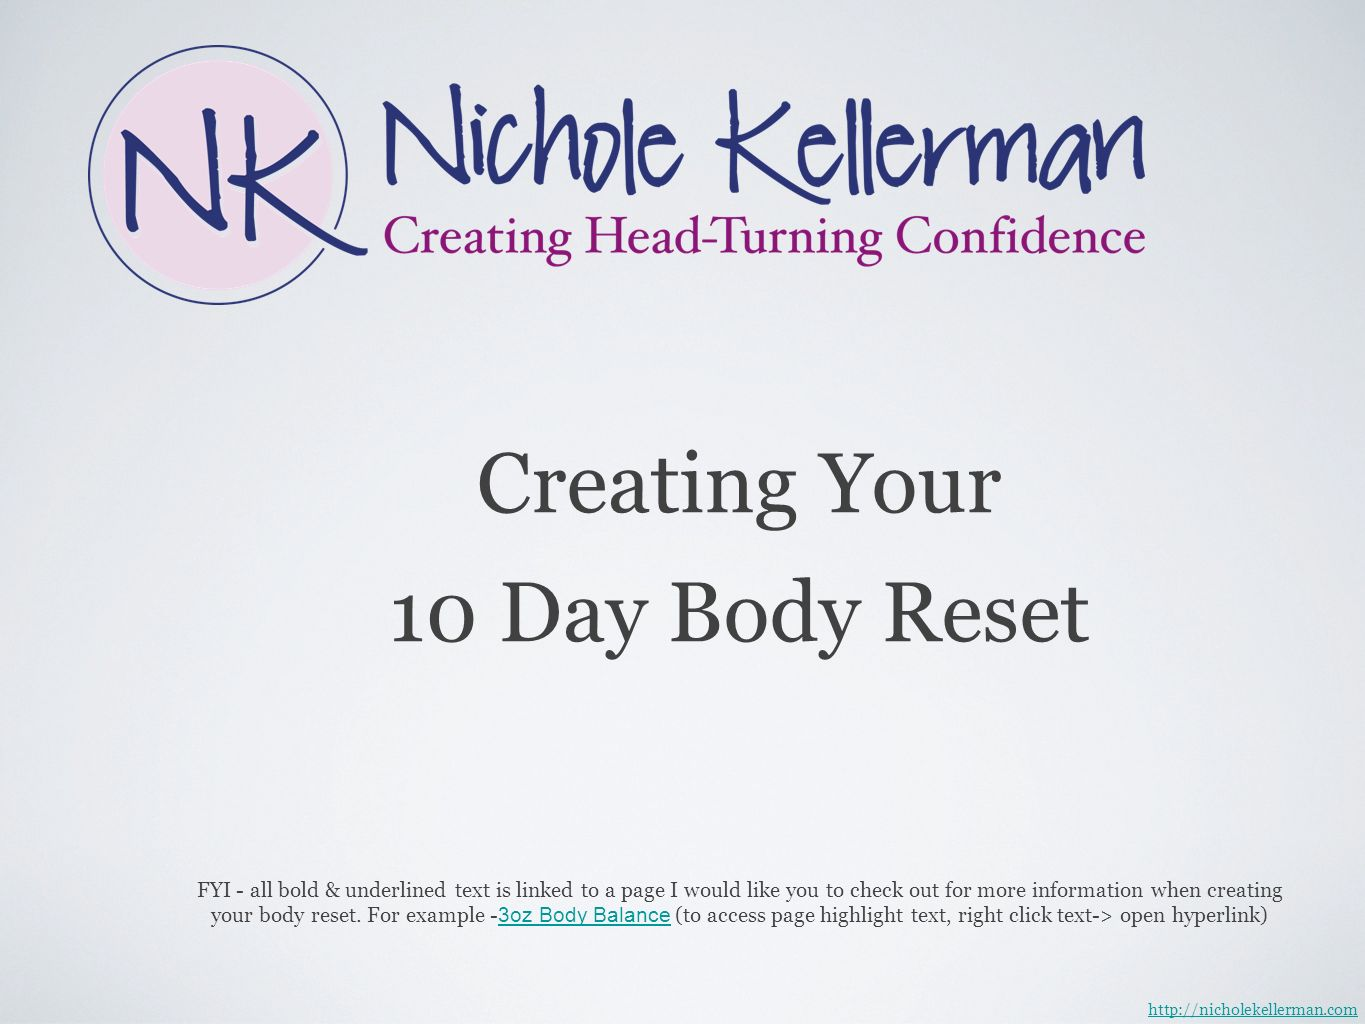 Creating Your 10 Day Body Reset http://nicholekellerman.com FYI - all bold & underlined text is linked to a page I would like you to check out for more information when creating your body reset.